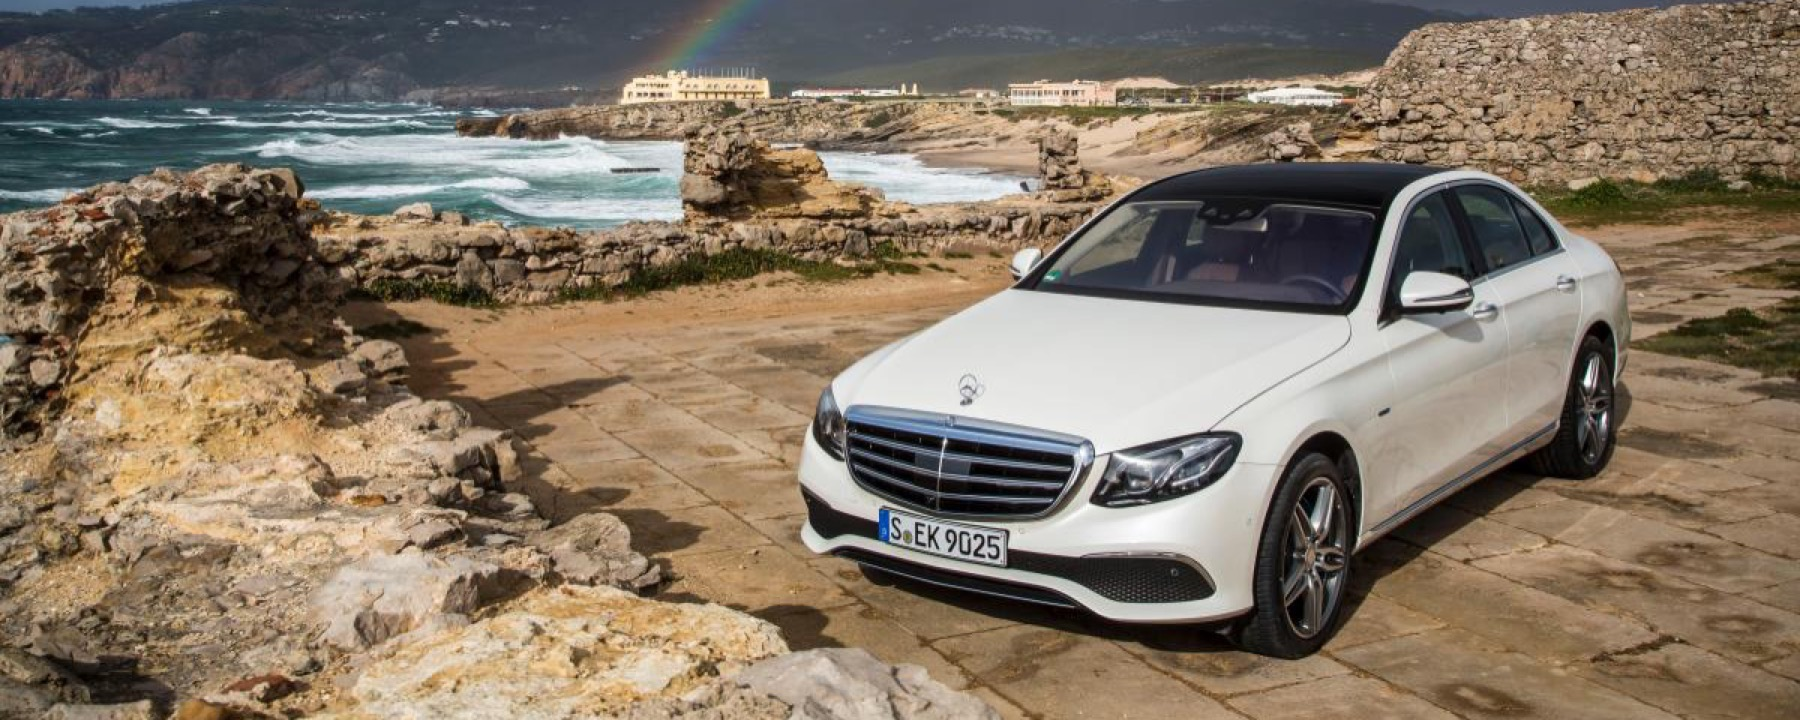 Techs and specs of the new mercedes benz e class baker for Mercedes benz e class specifications